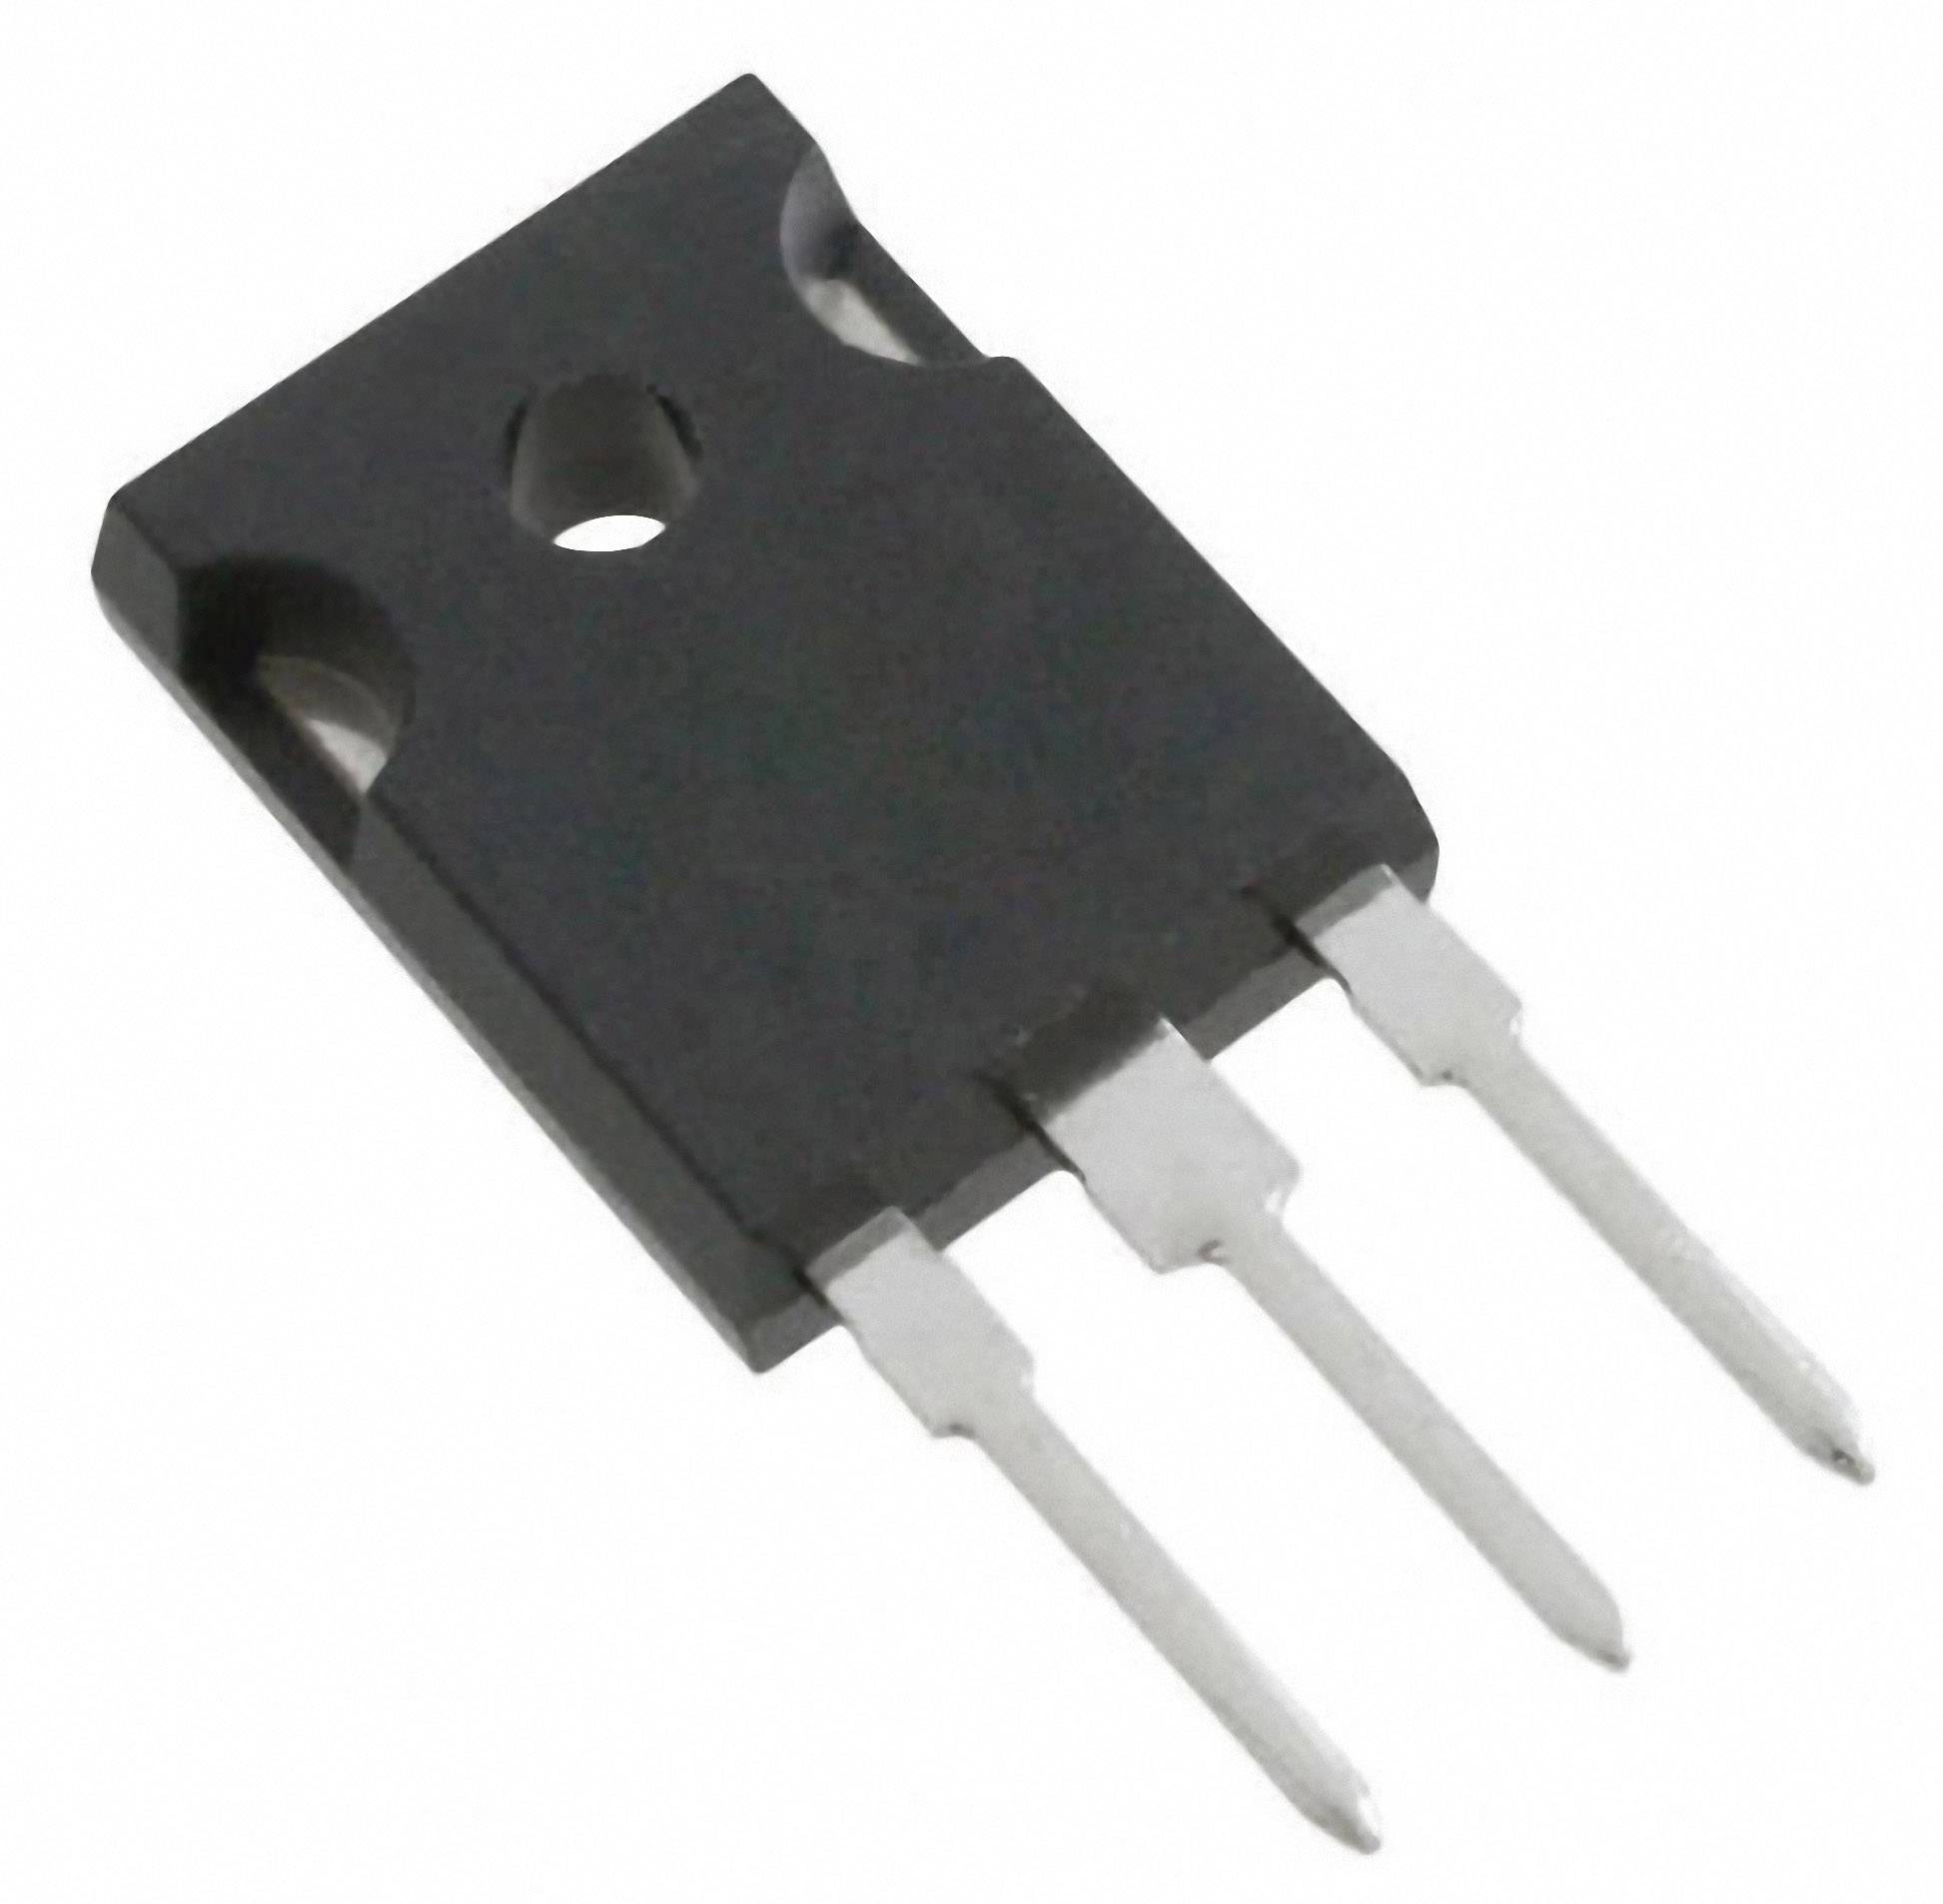 Tranzistor IGBT ON Semiconductor HGTG10N120BND, TO-247 , 1200 V, samostatný, standardní